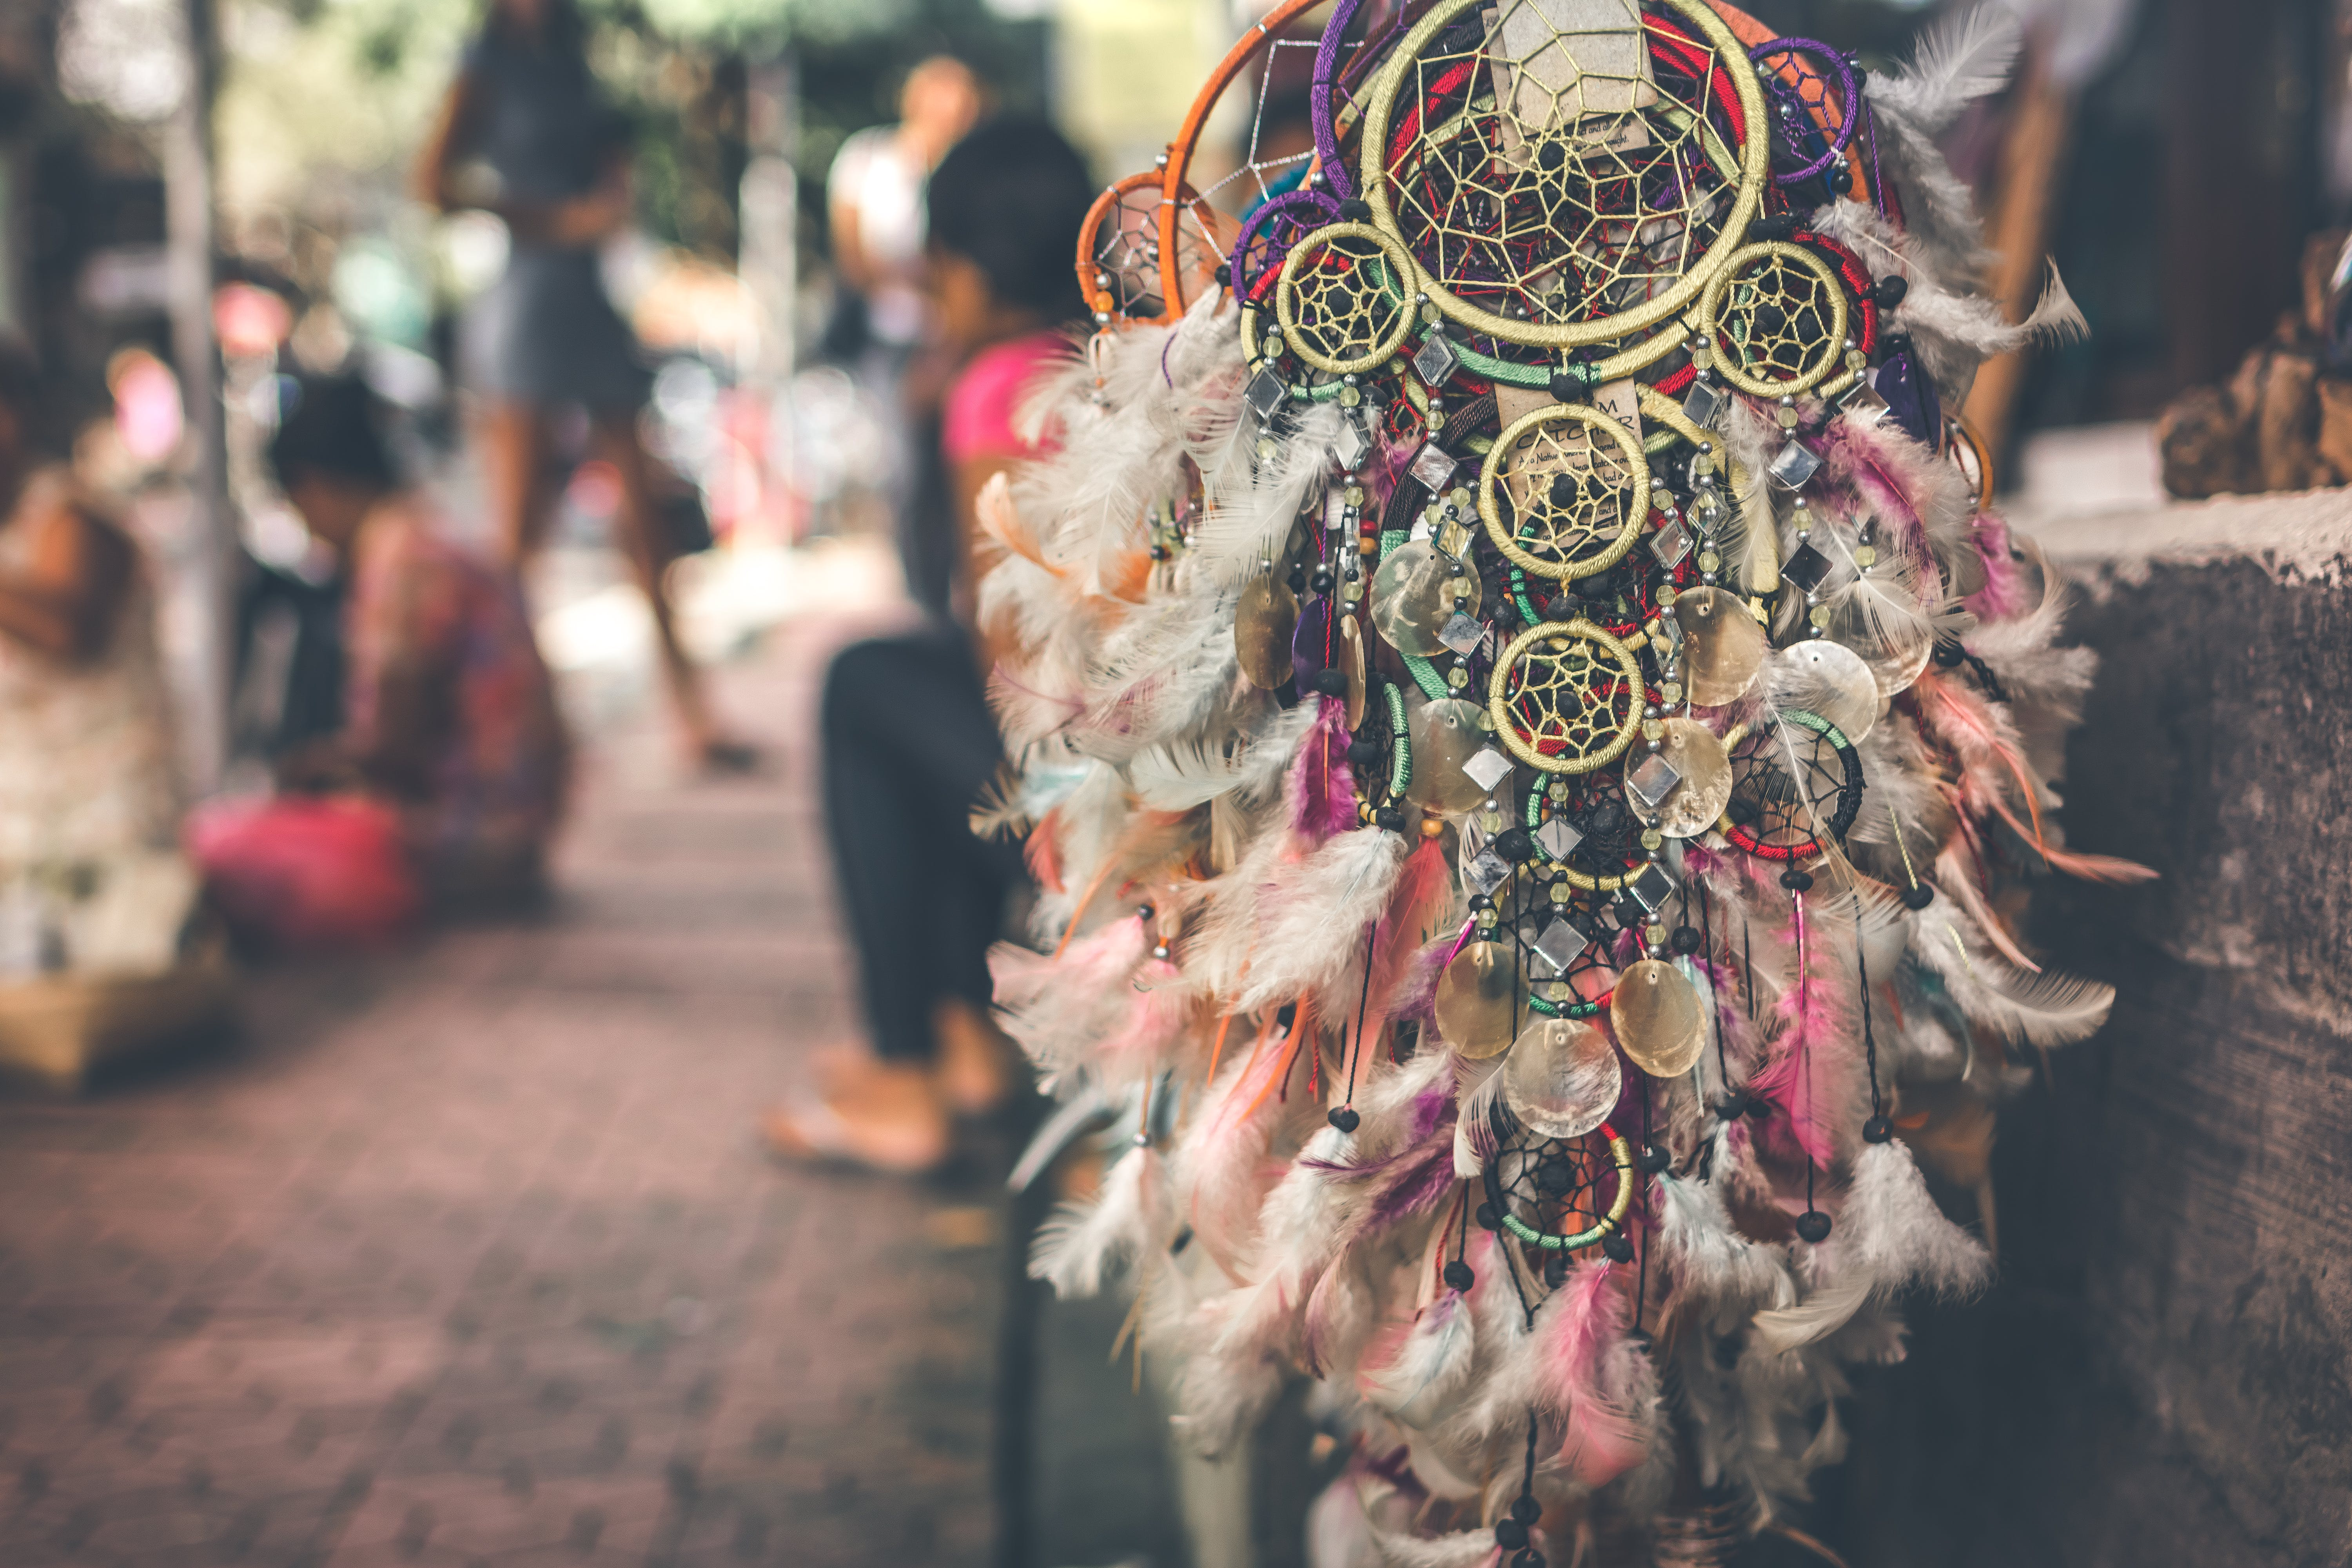 Selective Focus Photography of Dreamcatchers